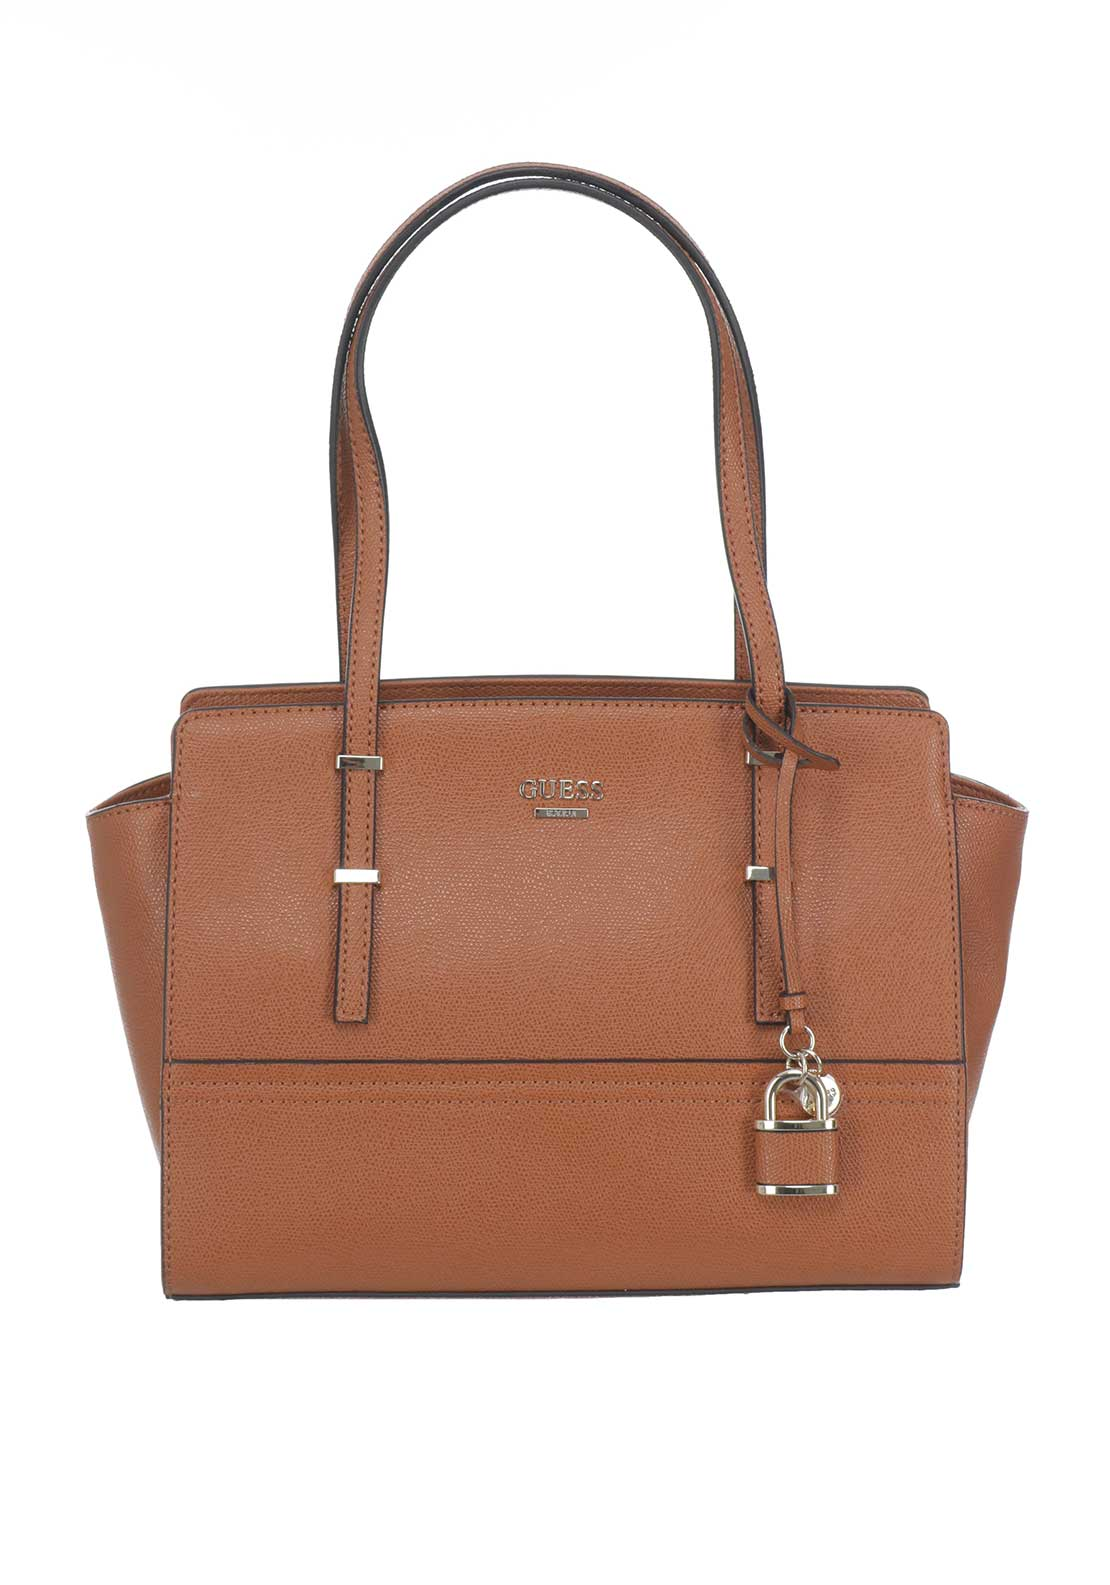 Guess Devyn Satchel Bag, Brown